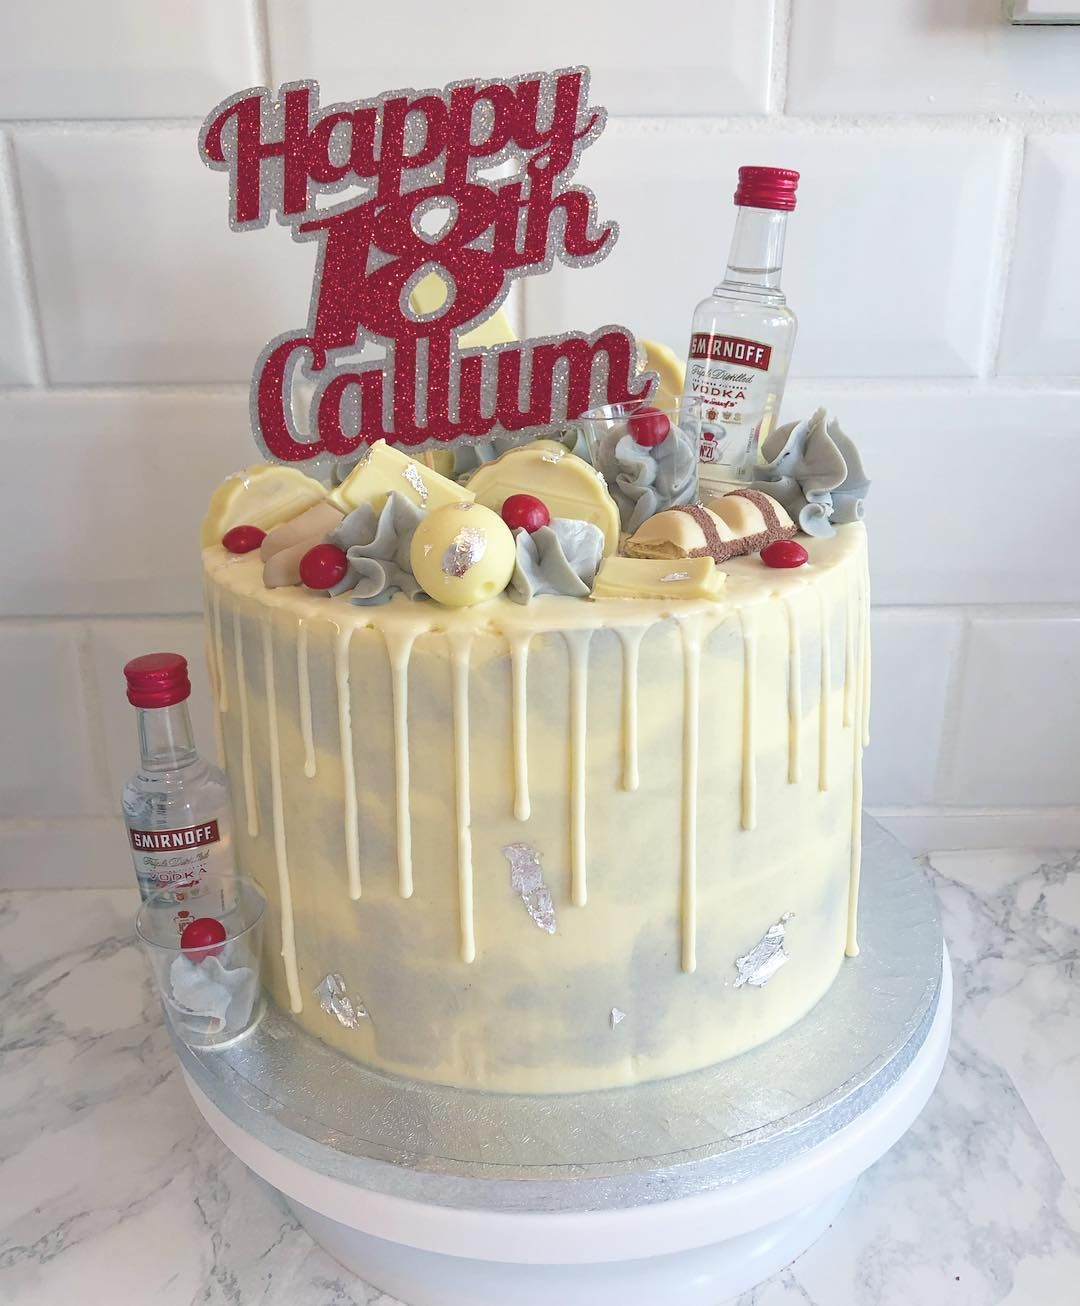 Tremendous Cally Cook On Instagram 18Th Birthday Cake Love This Smirnoff Funny Birthday Cards Online Fluifree Goldxyz